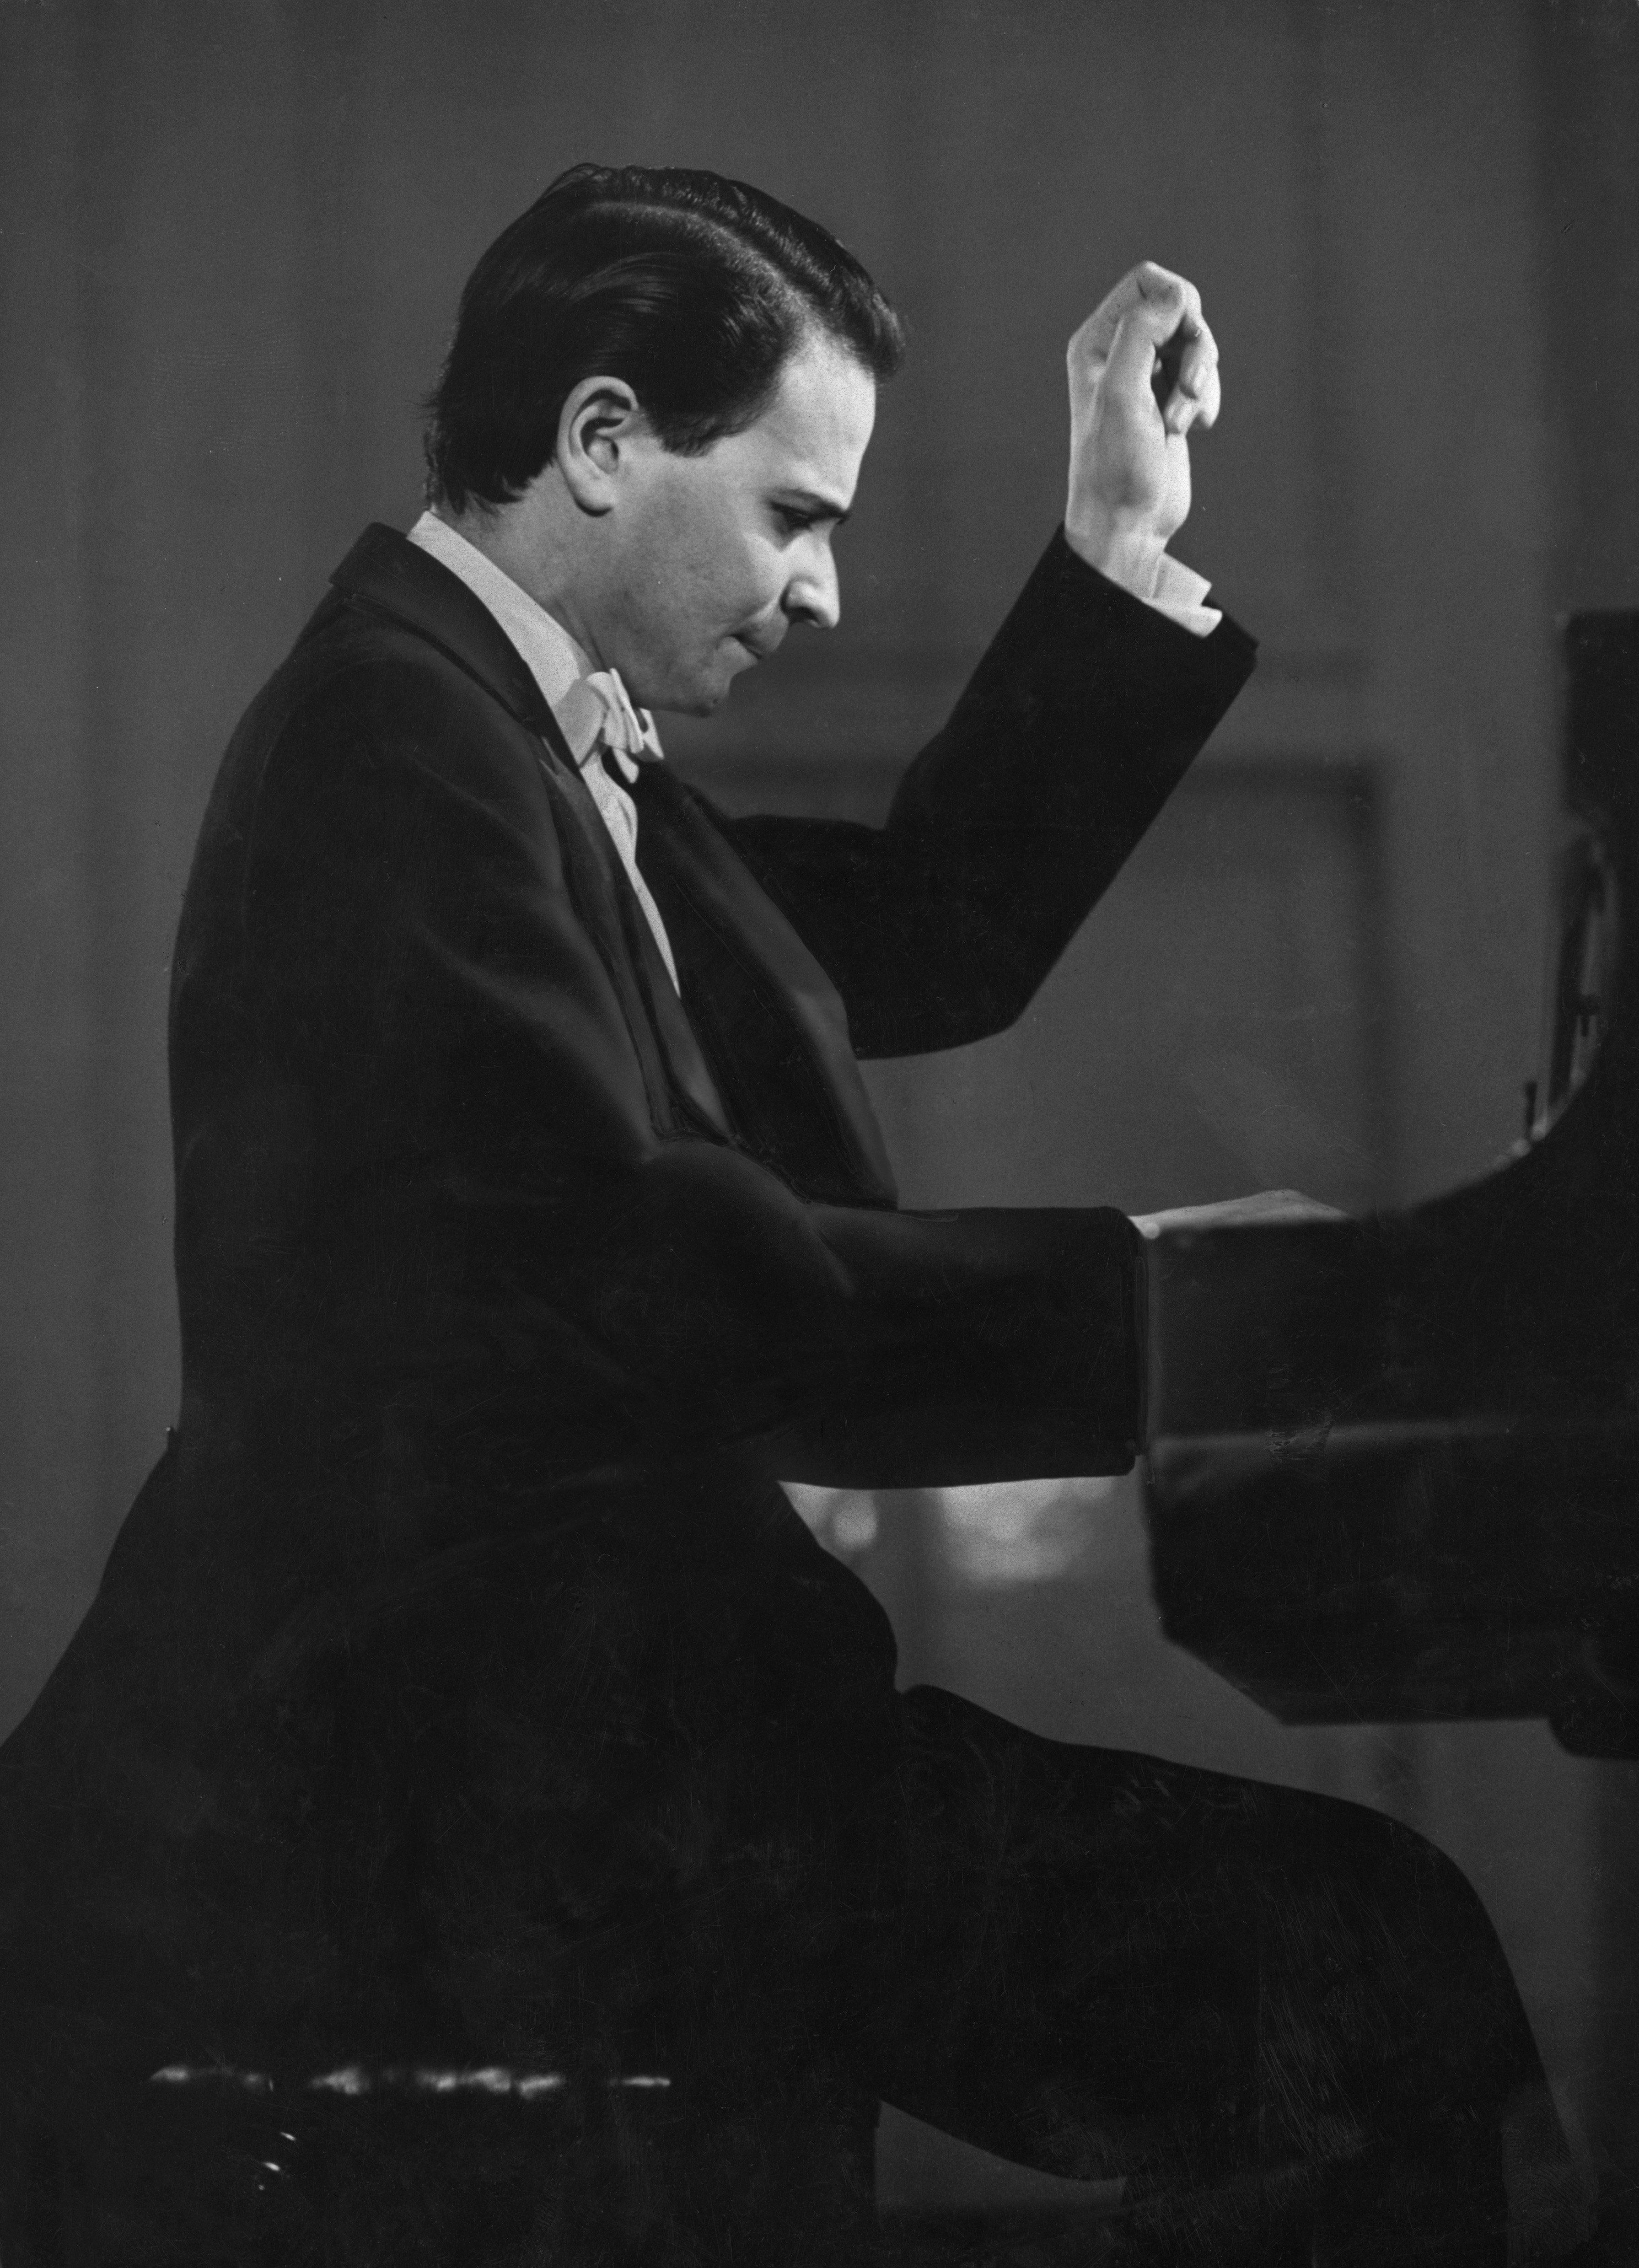 American pianist Byron Janis, circa 1961. (Photo by Pictorial Parade/Hulton Archive/Getty Images)